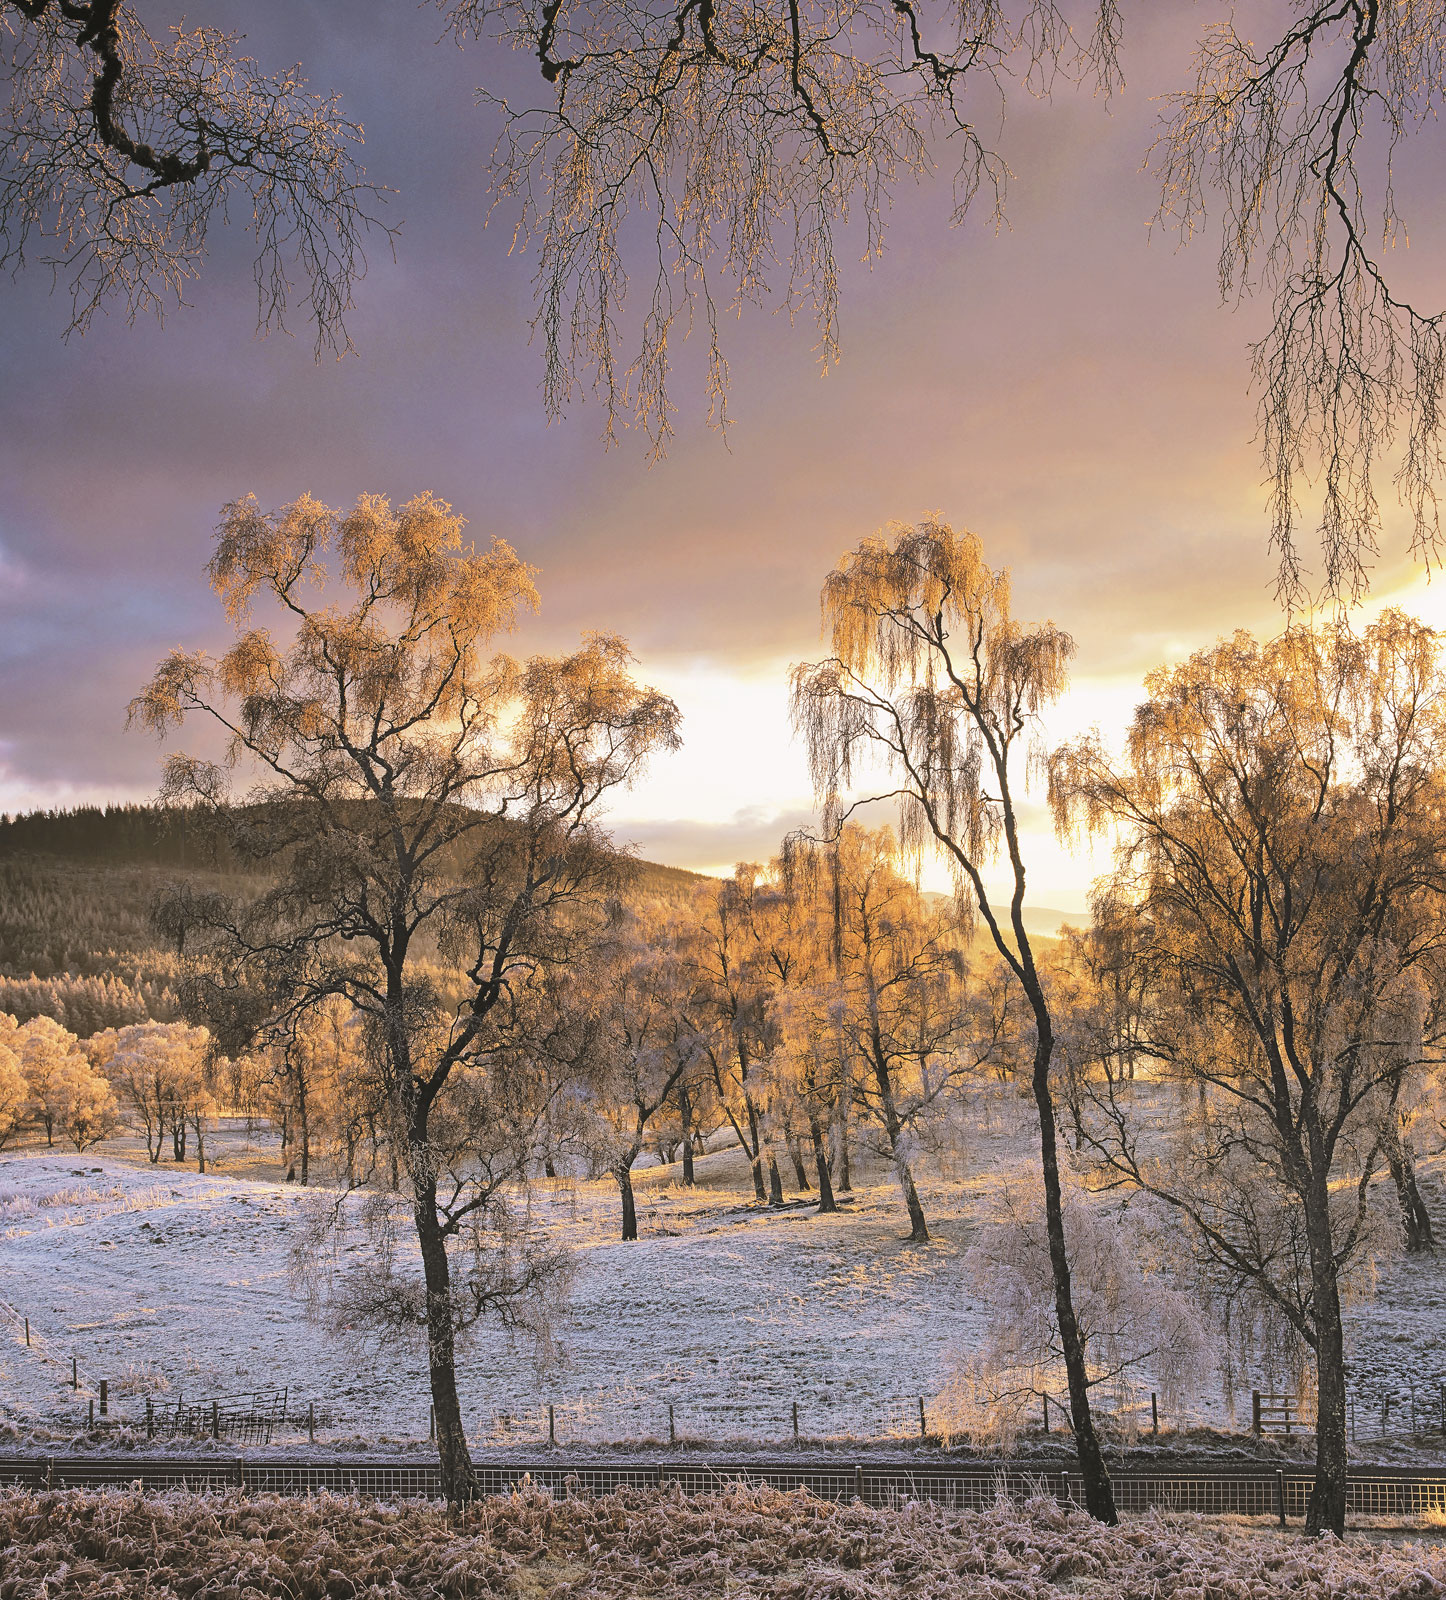 Out walking with my family one winter evening over by the river Spey I found some wonderful deep frosted birch trees white with...